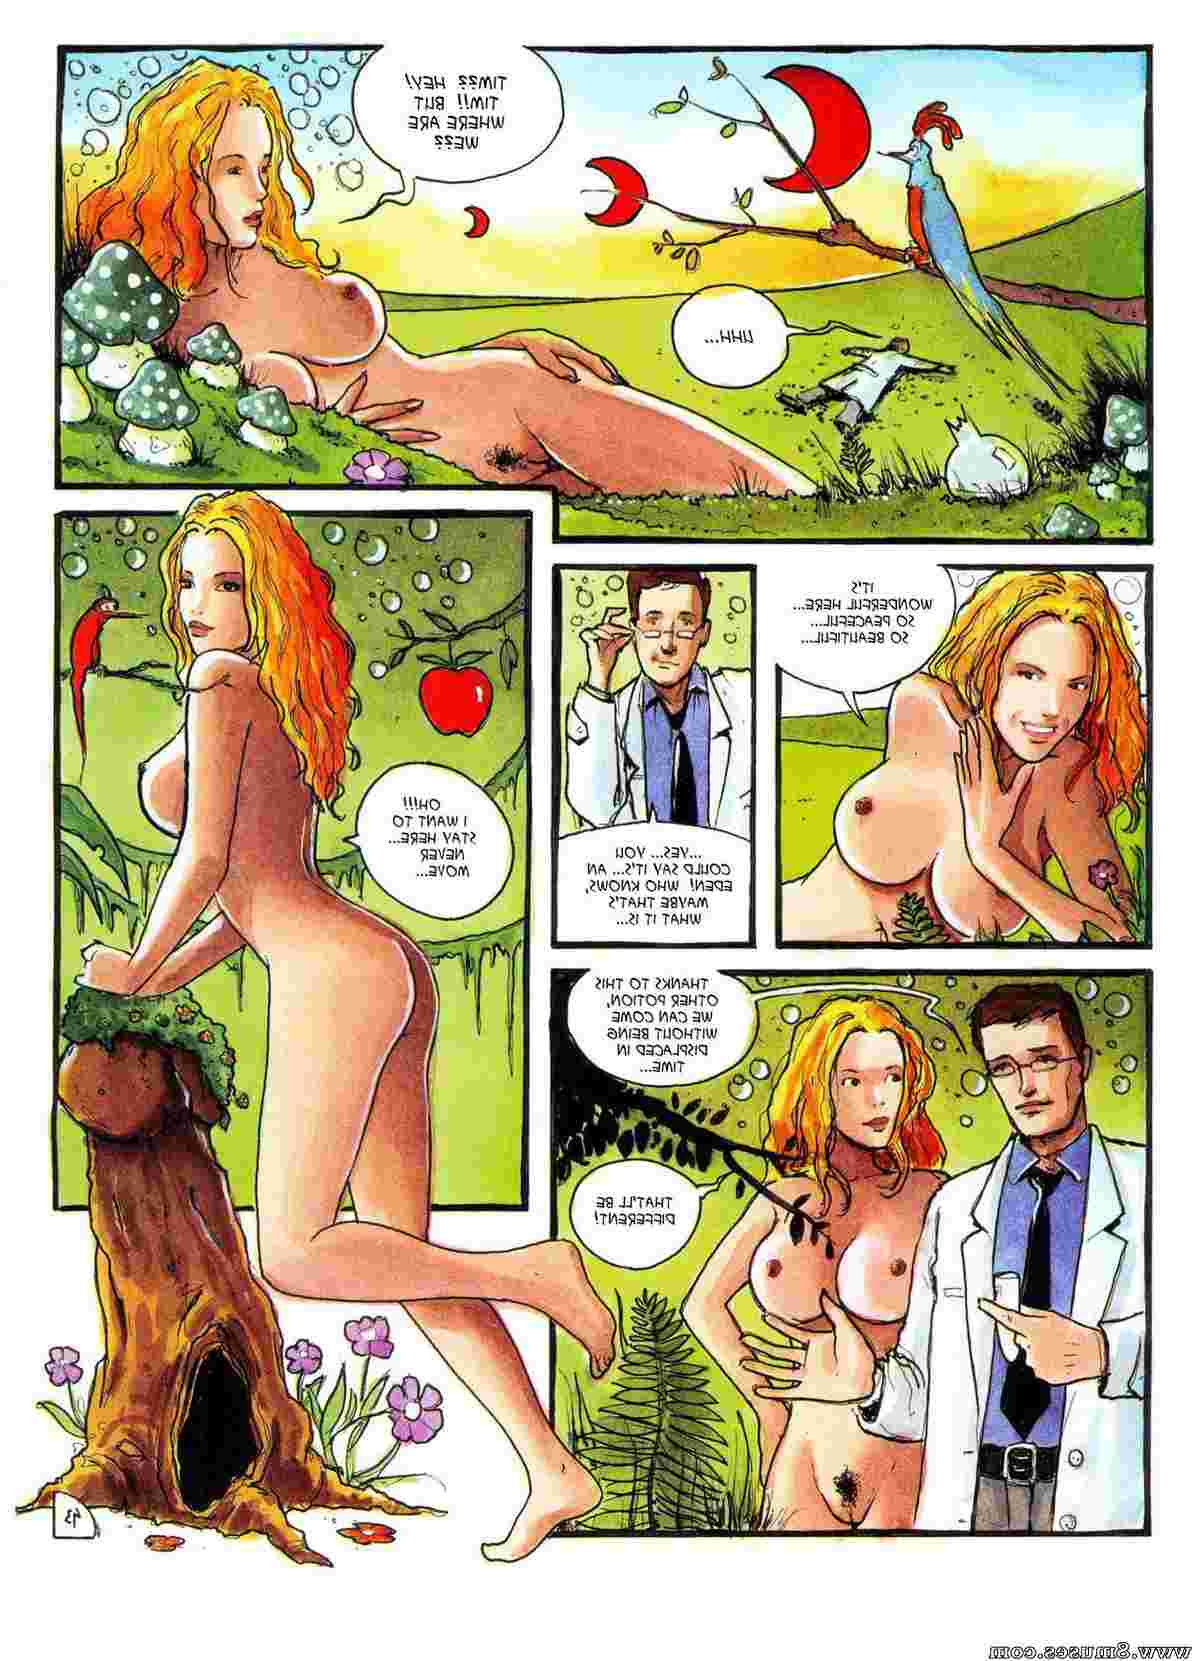 Topaz-Comics/Emma-Adrift-In-Time Emma_Adrift_In_Time__8muses_-_Sex_and_Porn_Comics_44.jpg